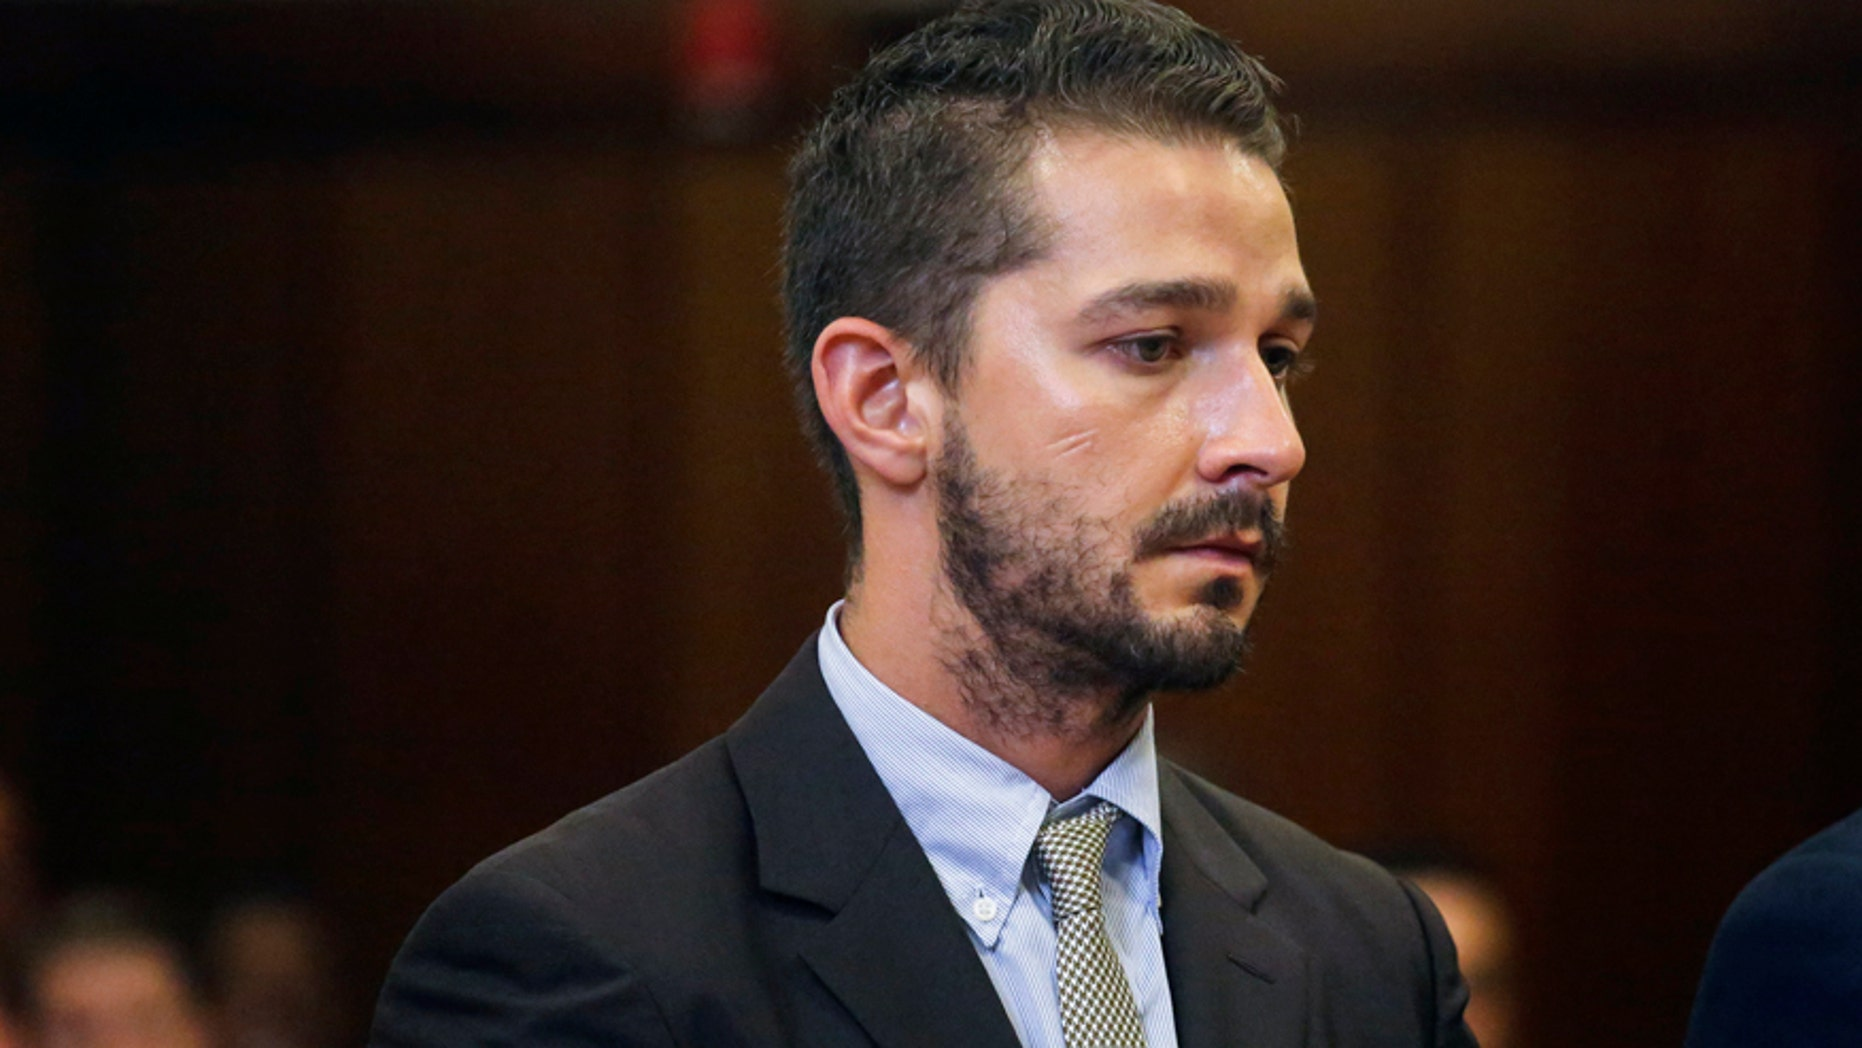 Actor Shia LaBeouf attends a hearing at the Manhattan Criminal Court in New York July 24, 2014.